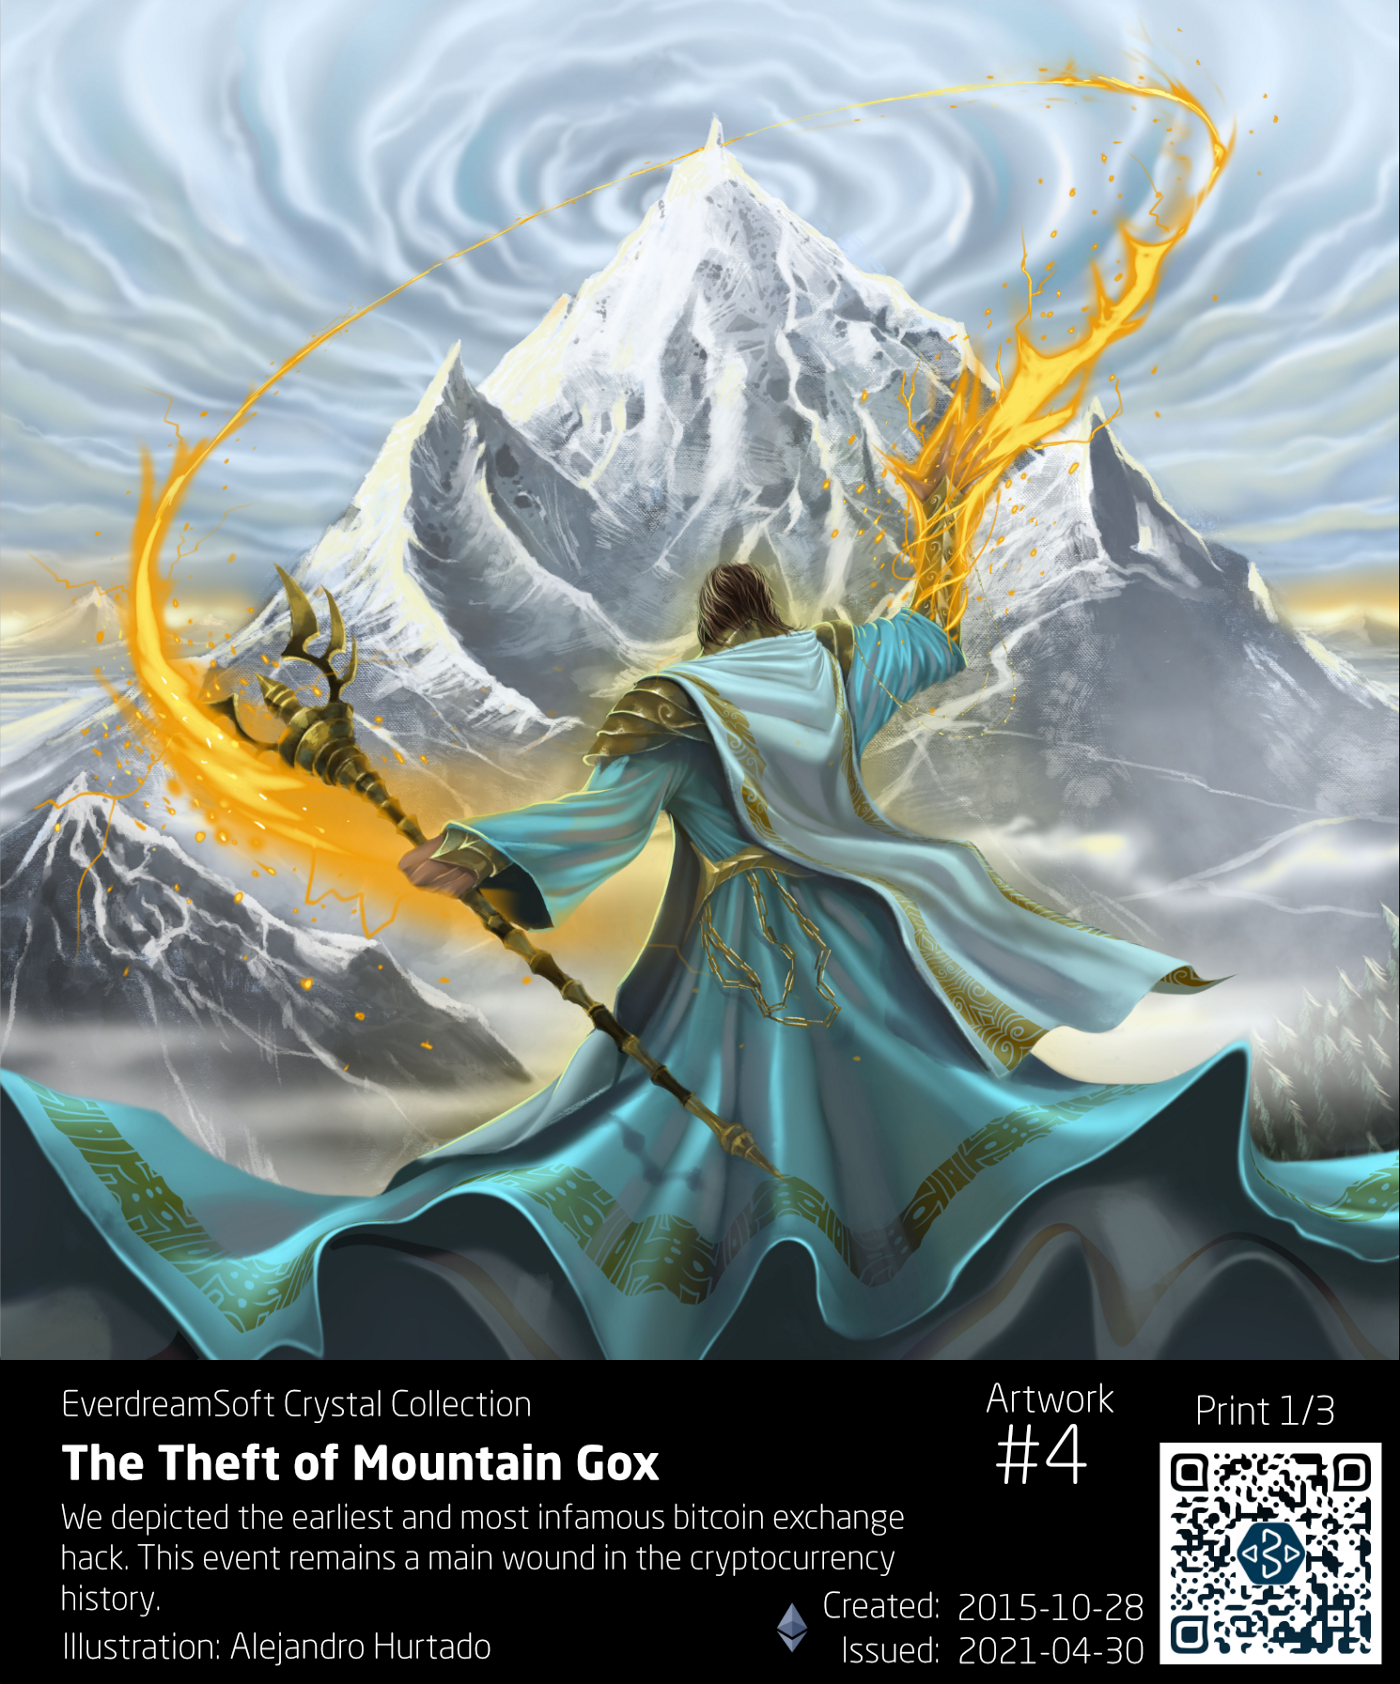 The Theft of Mountain Gox, Print 1/3